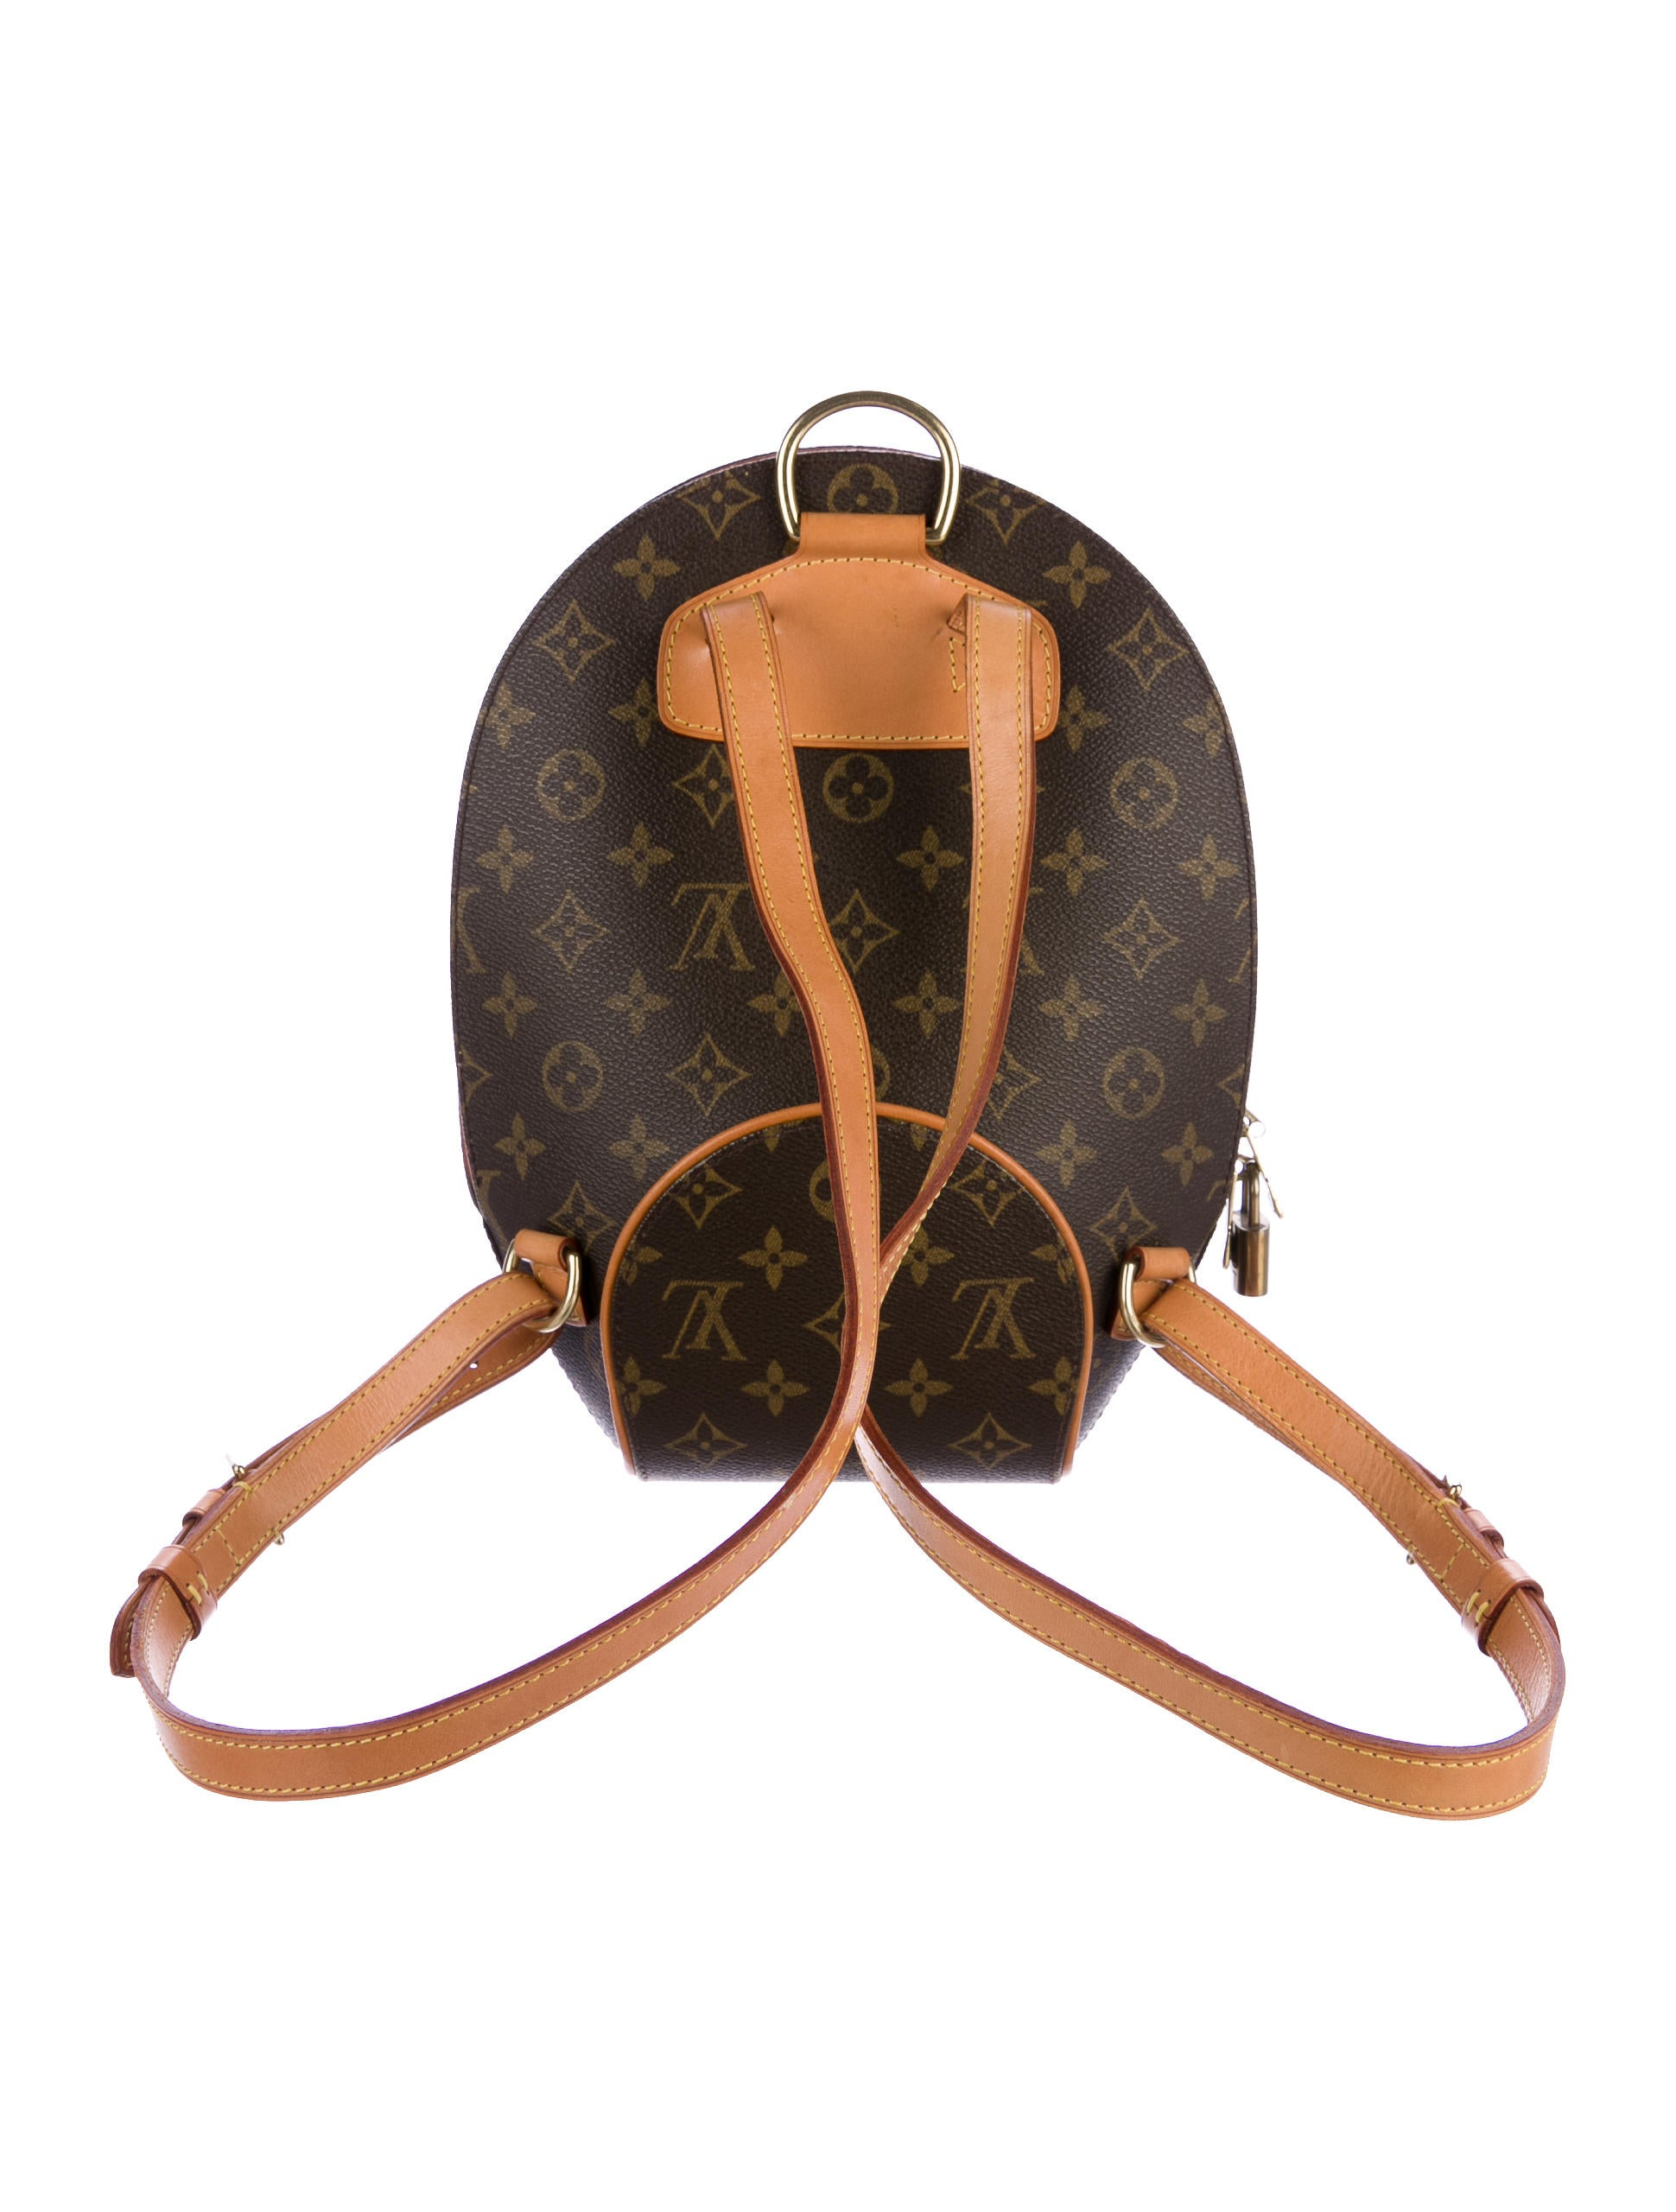 louis vuitton monogram ellipse backpack handbags. Black Bedroom Furniture Sets. Home Design Ideas